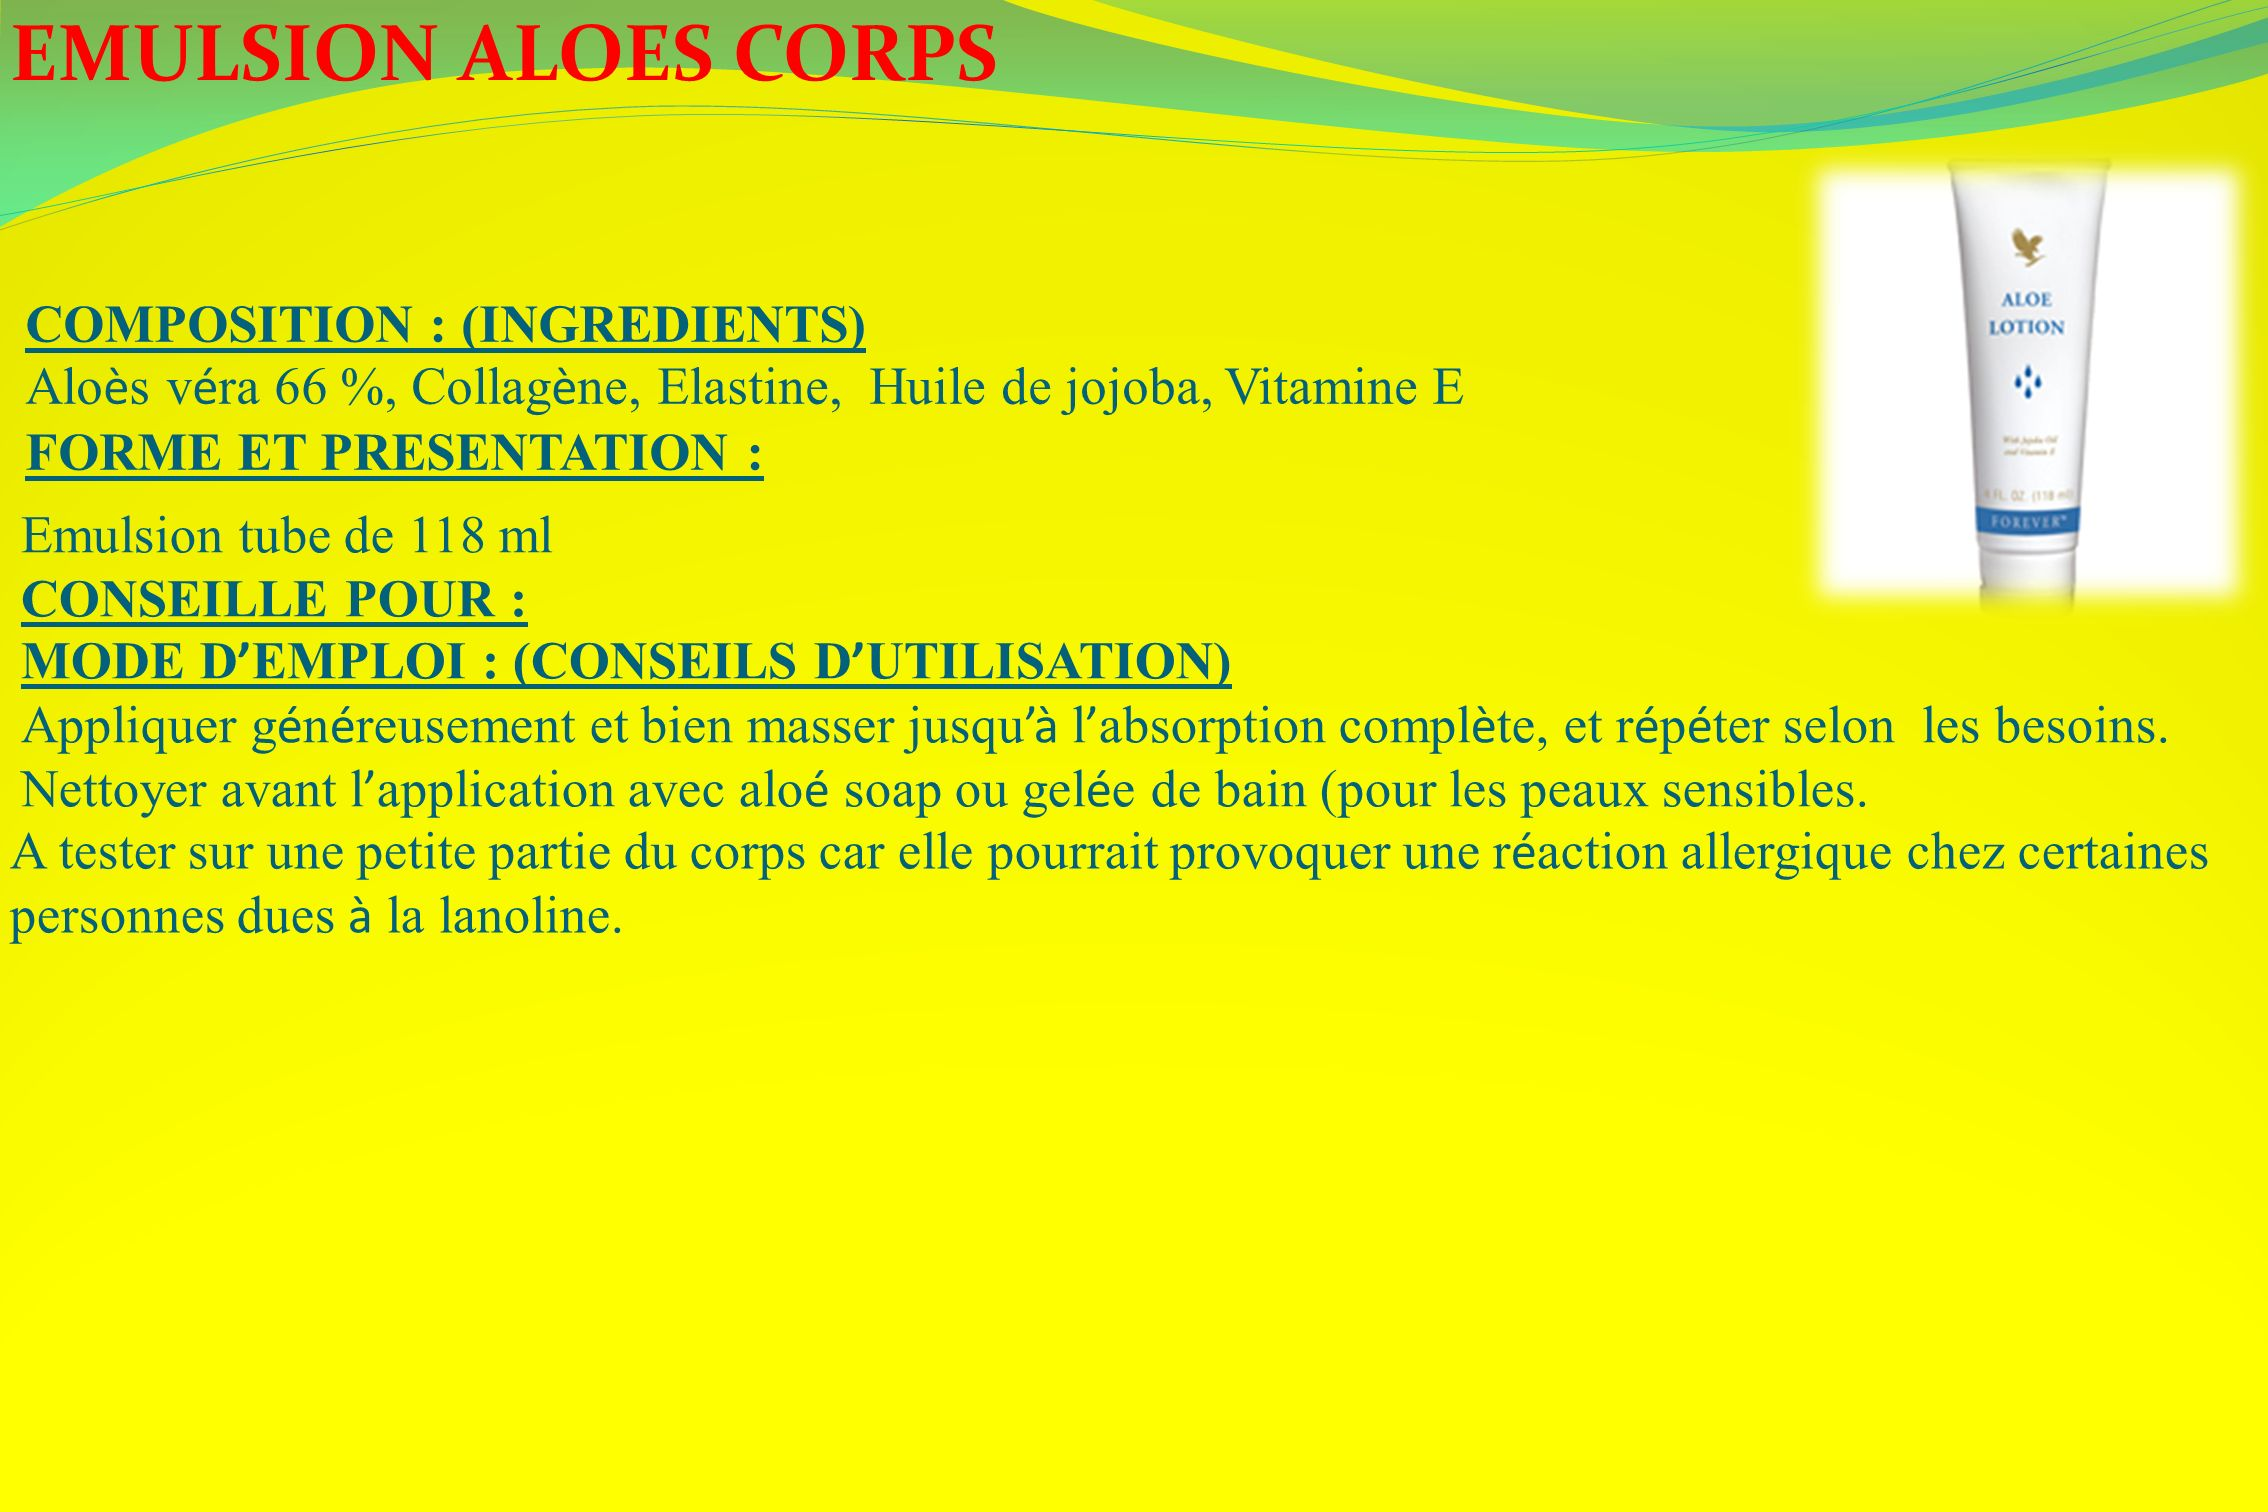 EMULSION ALOES CORPS COMPOSITION : (INGREDIENTS)